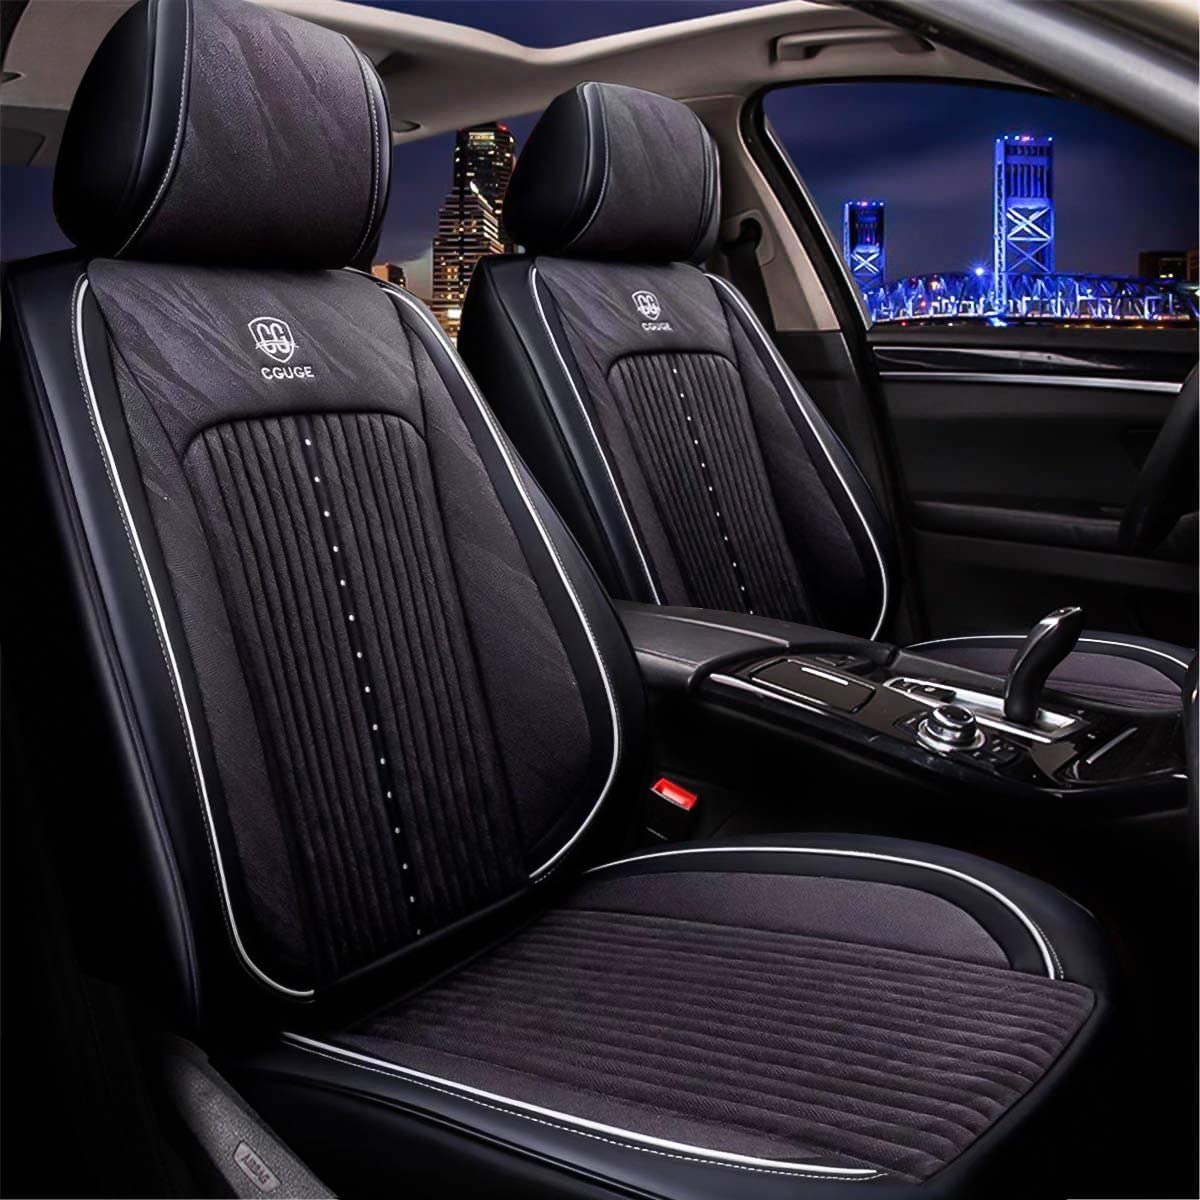 AUDI A6 PREMIUM CAR SEAT COVERS PROTECTORS 100/% WATERPROOF BLACK